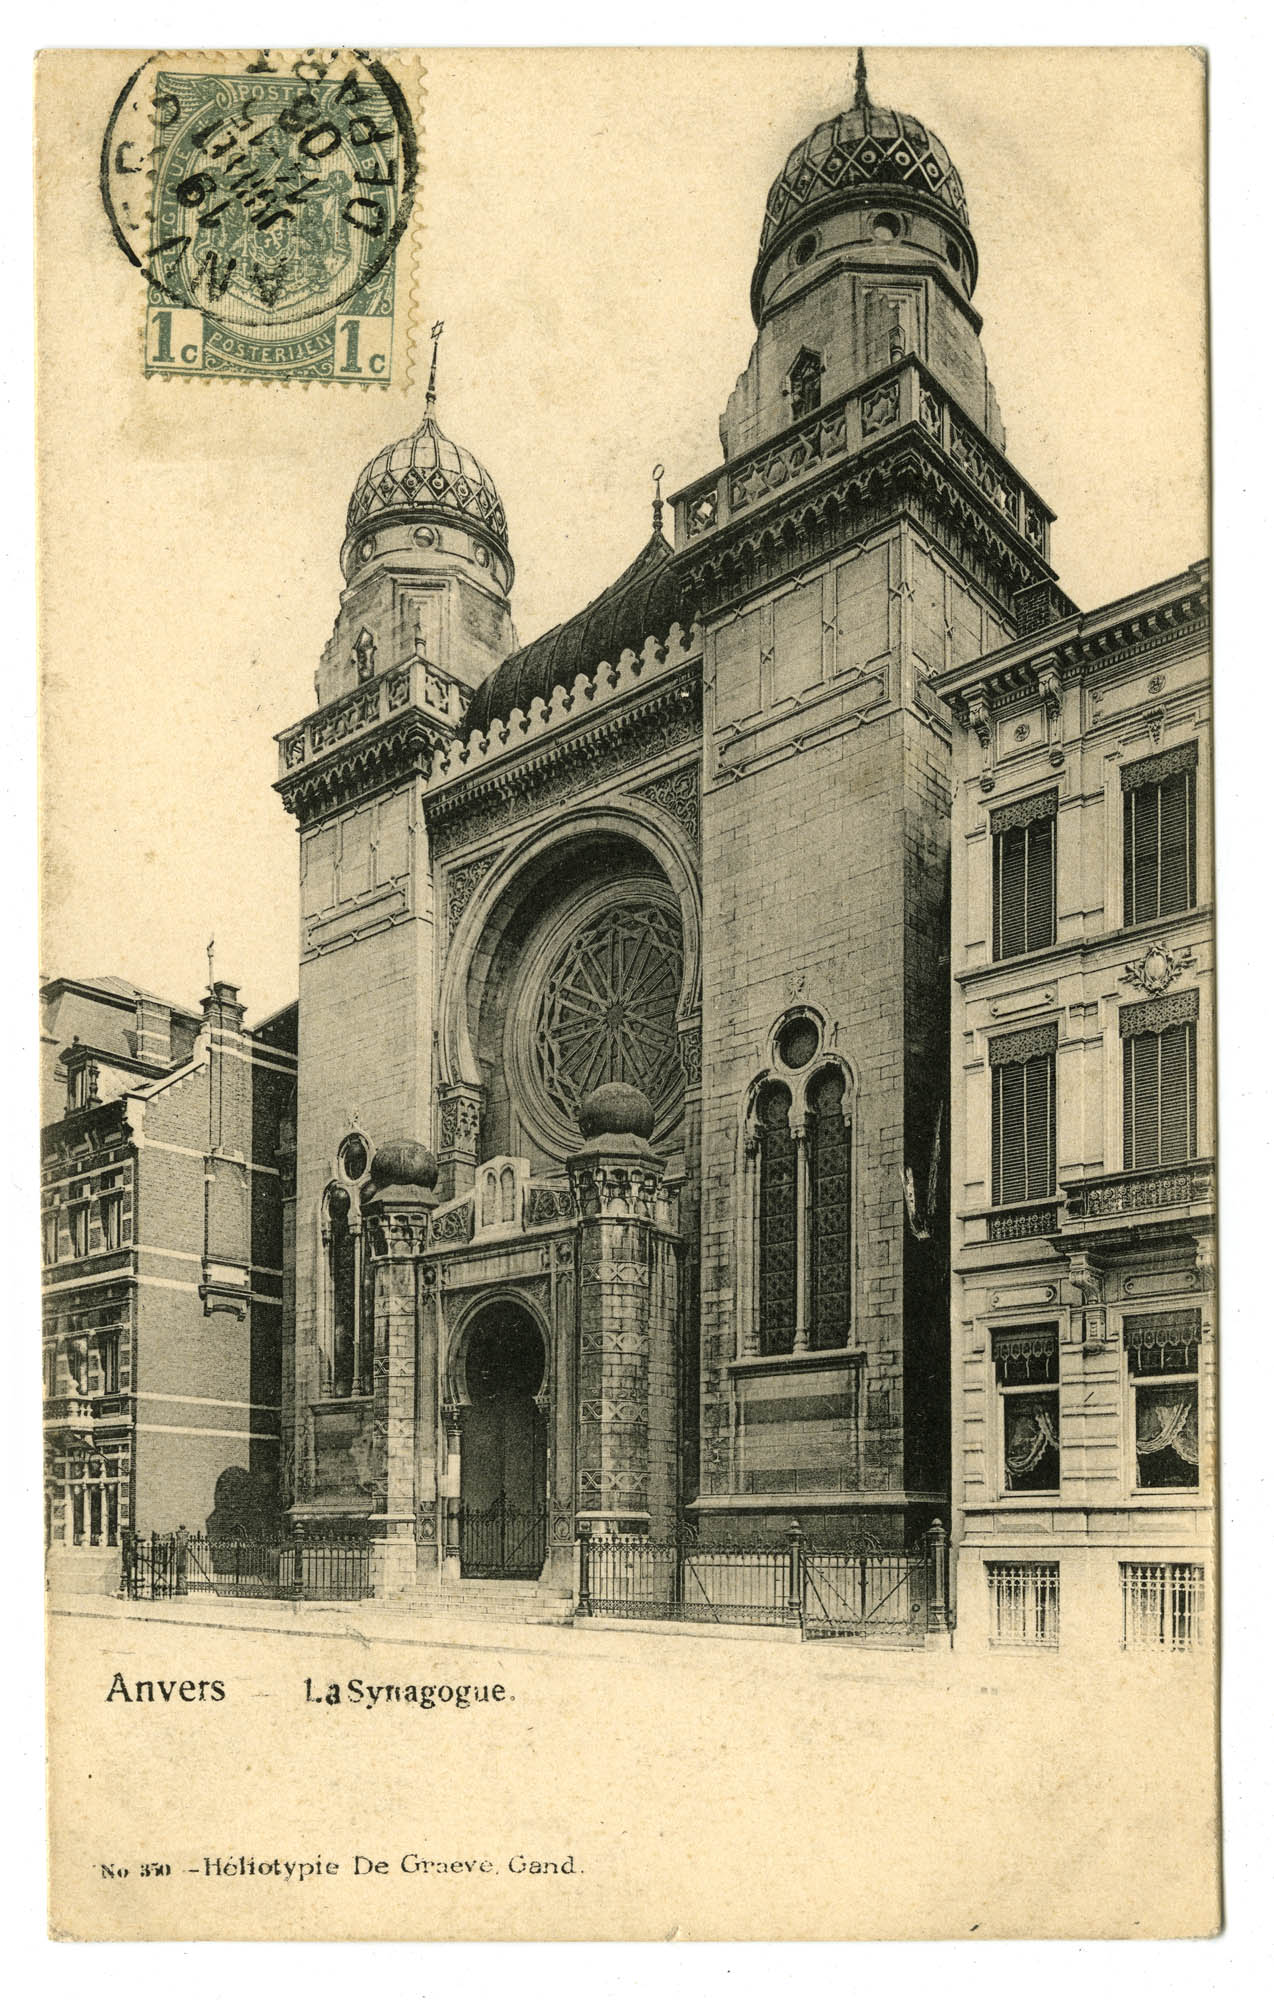 Anvers - La Synagogue